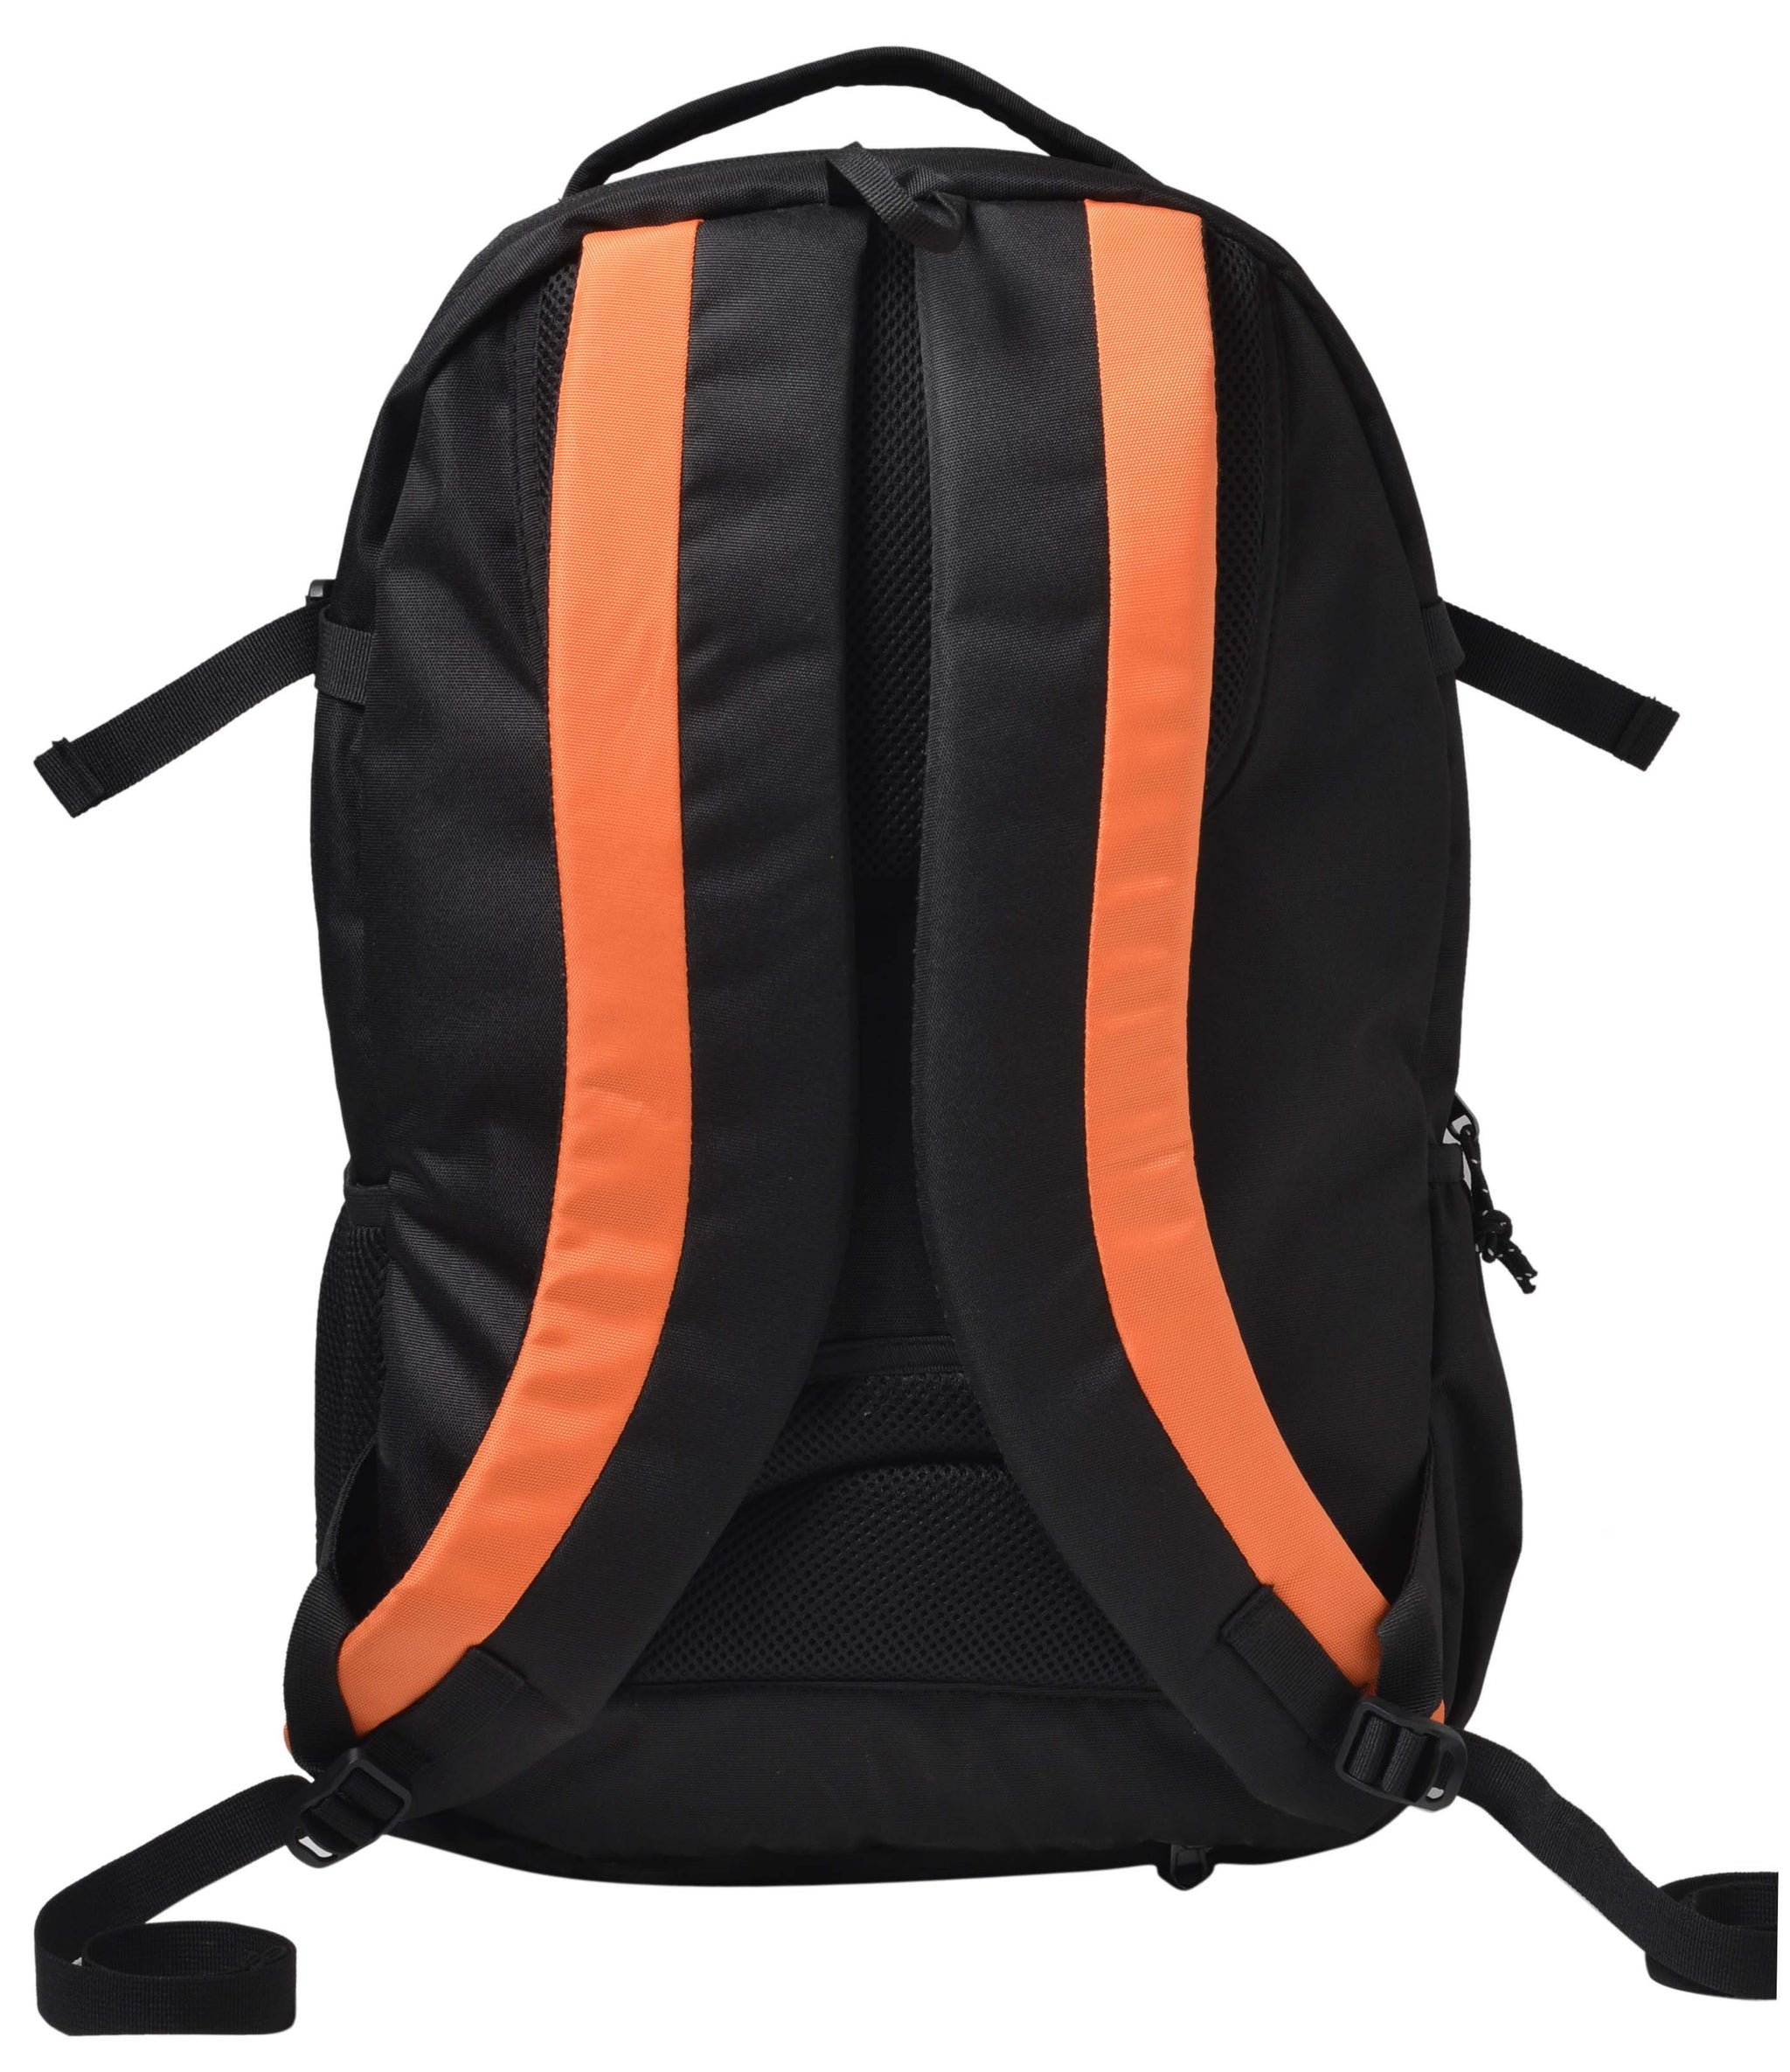 F Gear Boshida 31 Liters Orange Trekking Laptop Backpack With Rain Cover